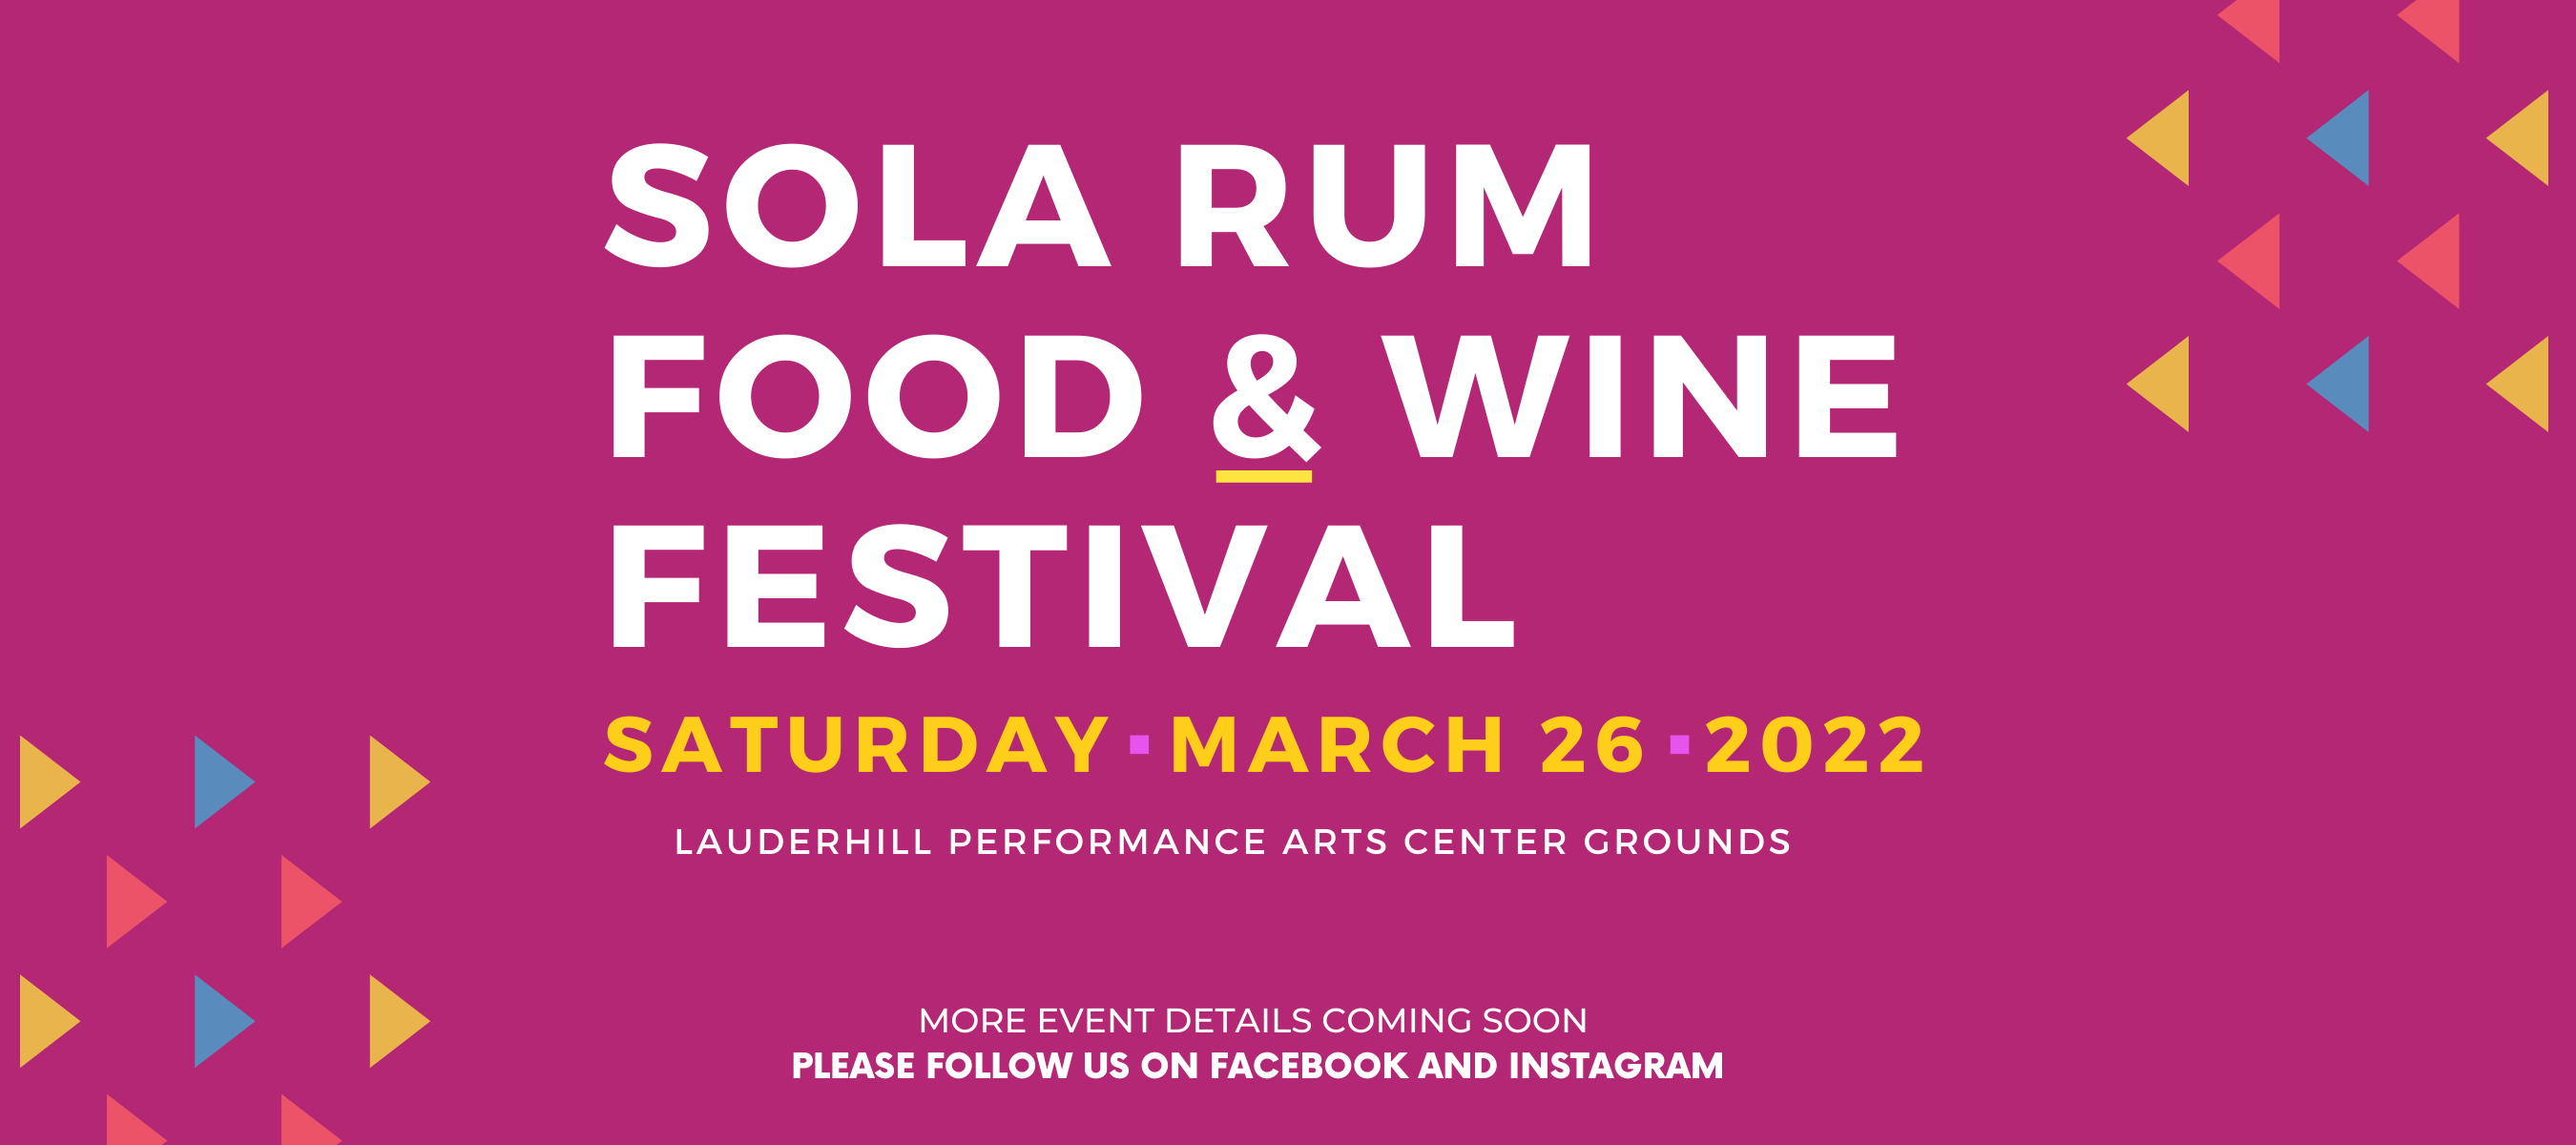 Sola Rum Food and Wine Festival Saturday, March 26, 2022